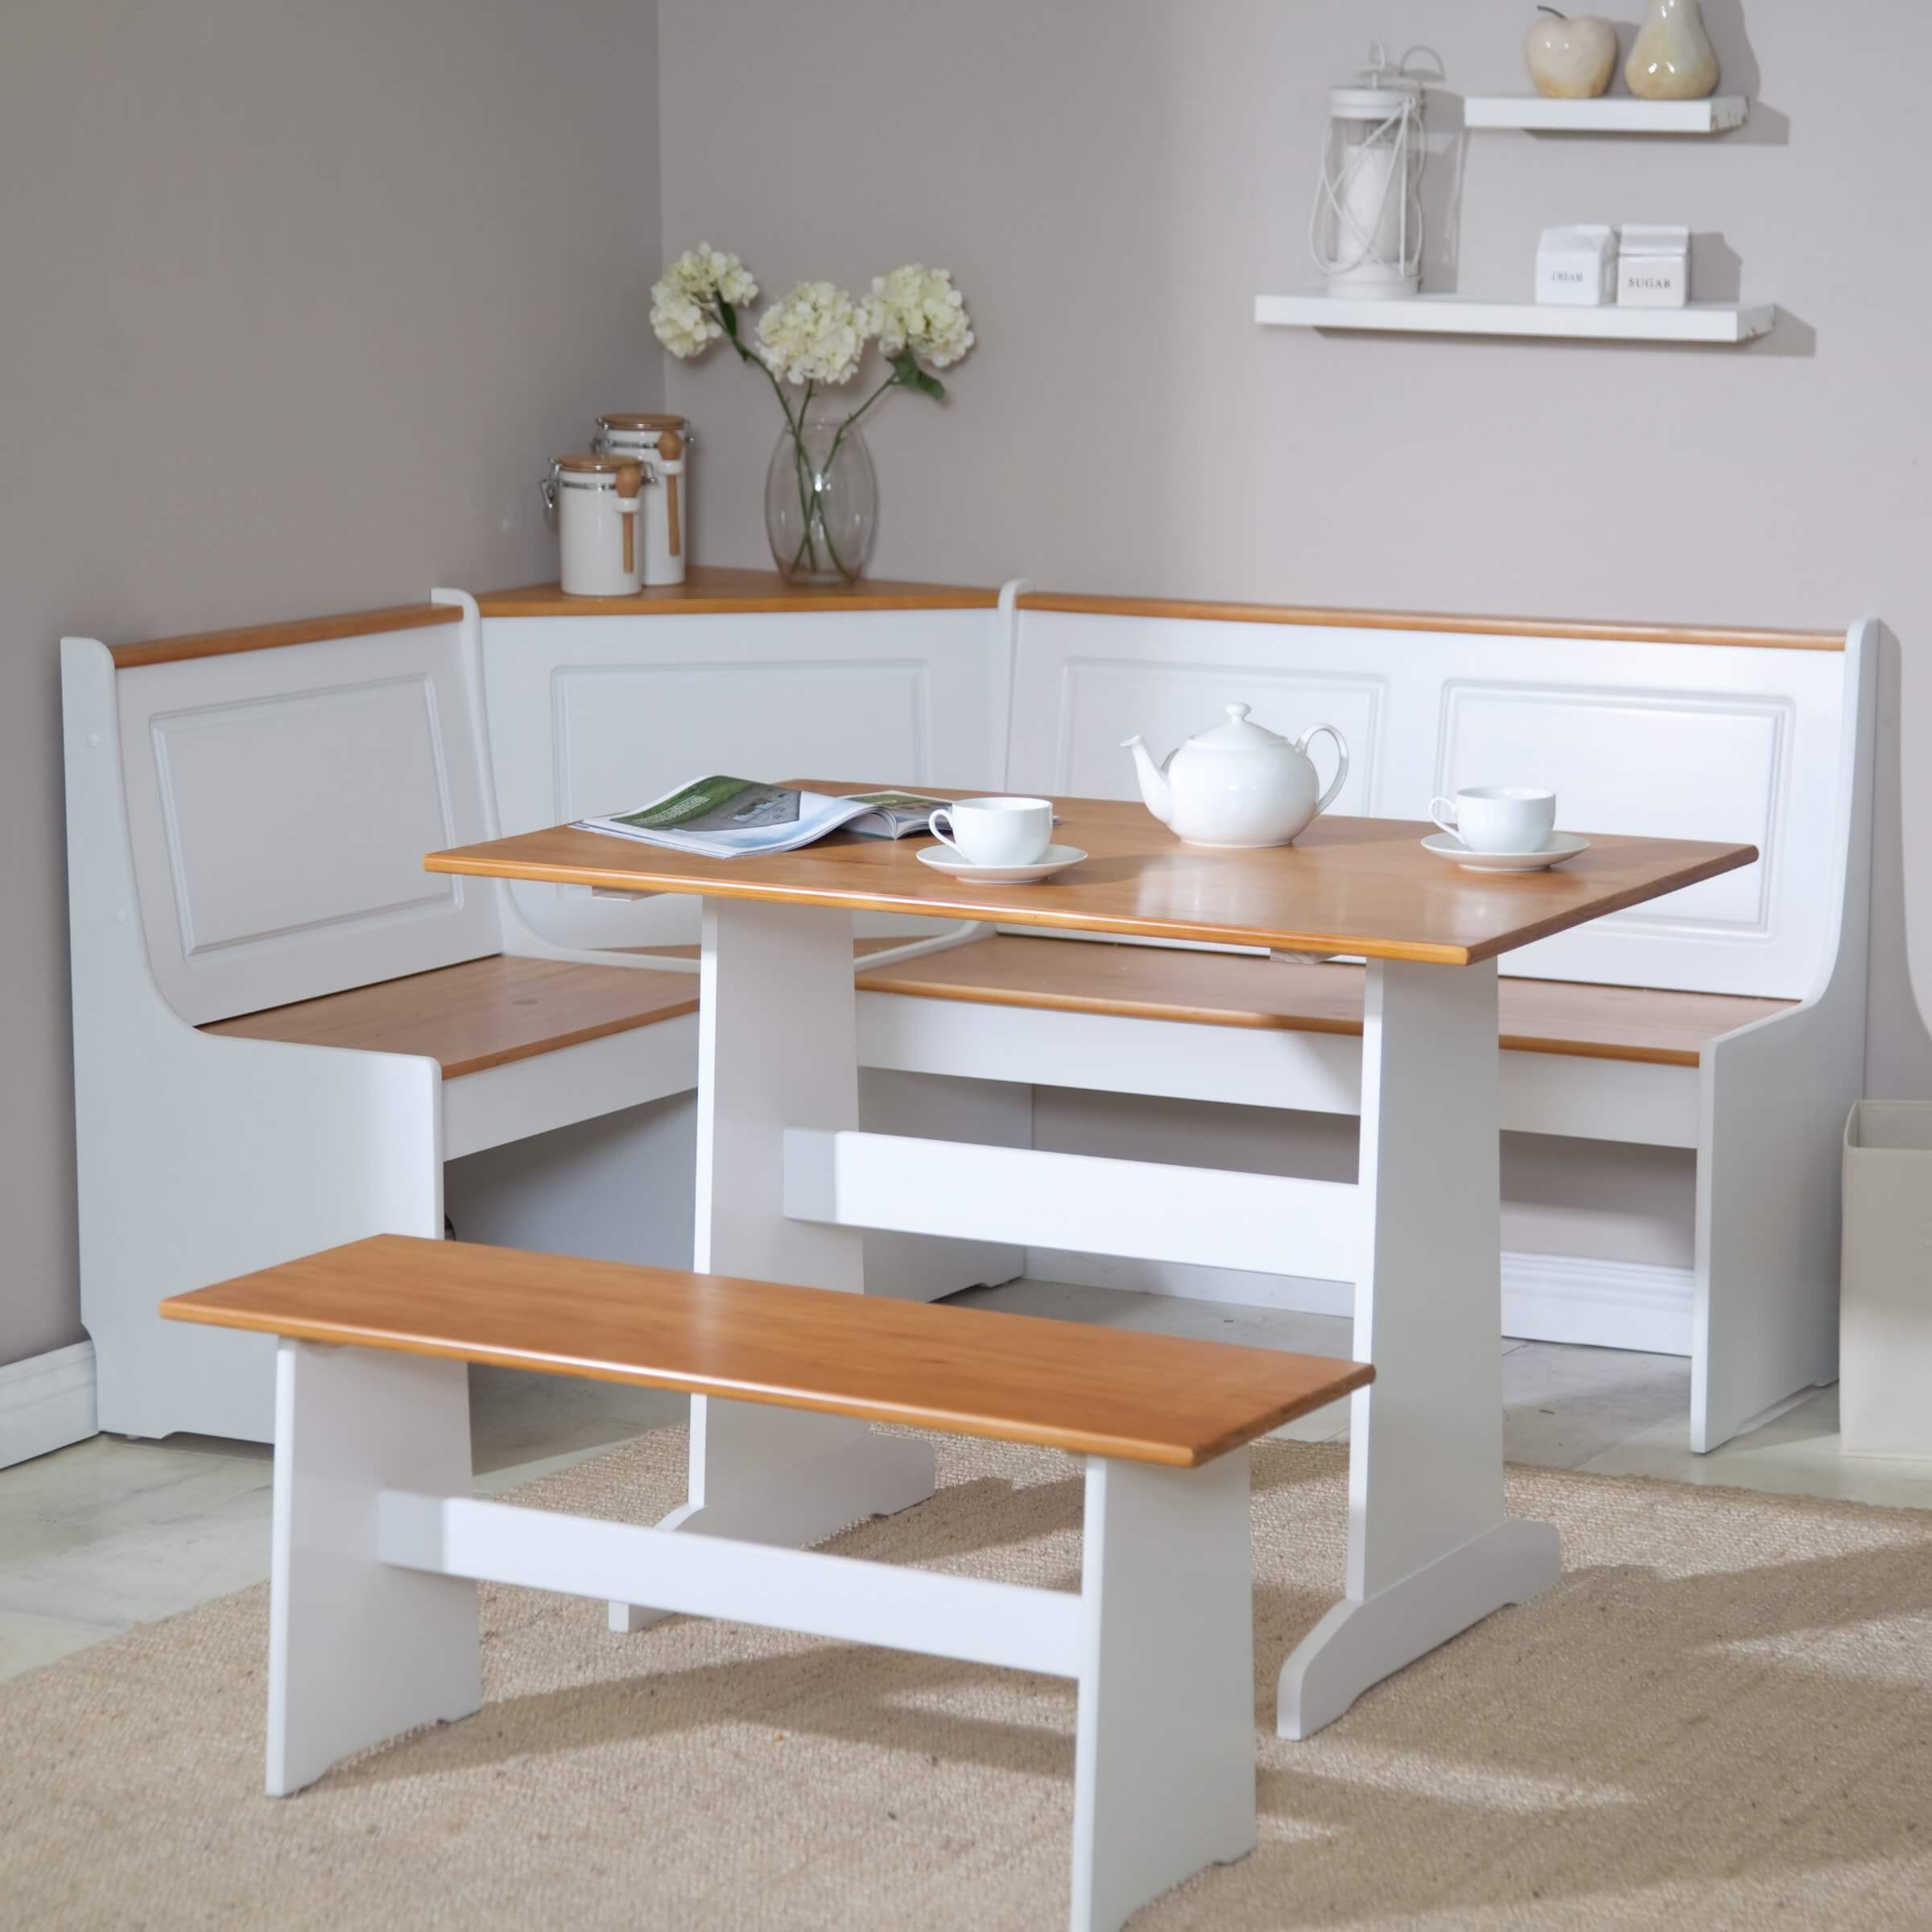 Ardmore Breakfast Nook Set & Wow! 30 Space-Saving Corner Breakfast Nook Furniture Sets (2019)